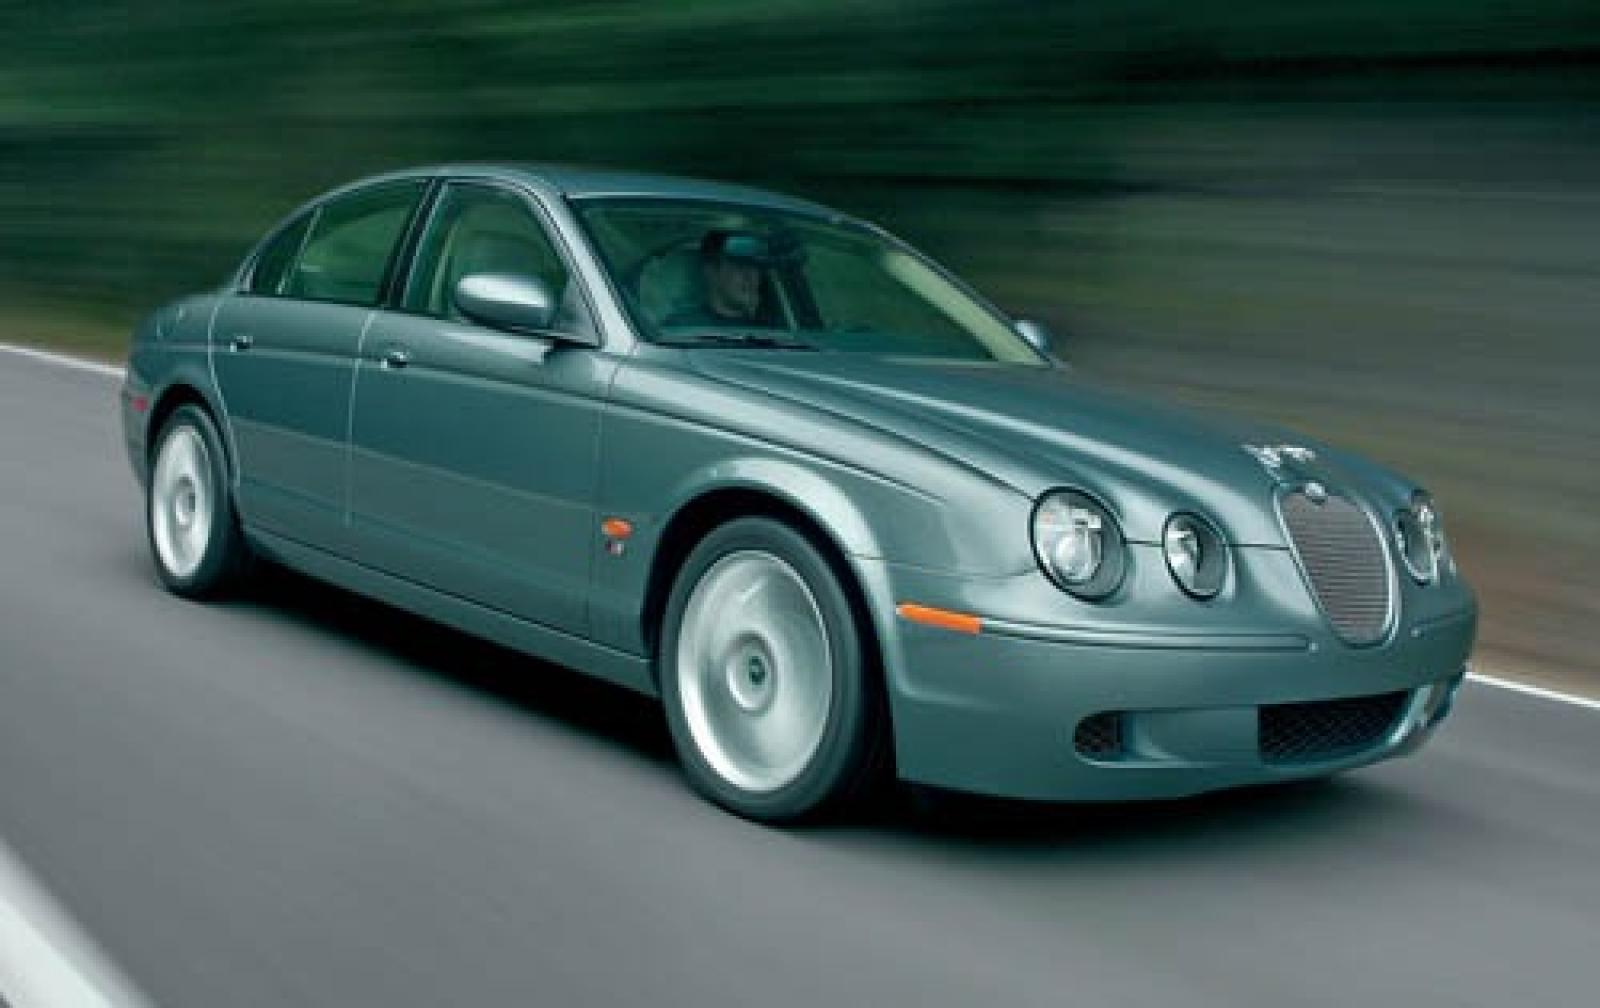 2006 jaguar s type information and photos zombiedrive. Black Bedroom Furniture Sets. Home Design Ideas